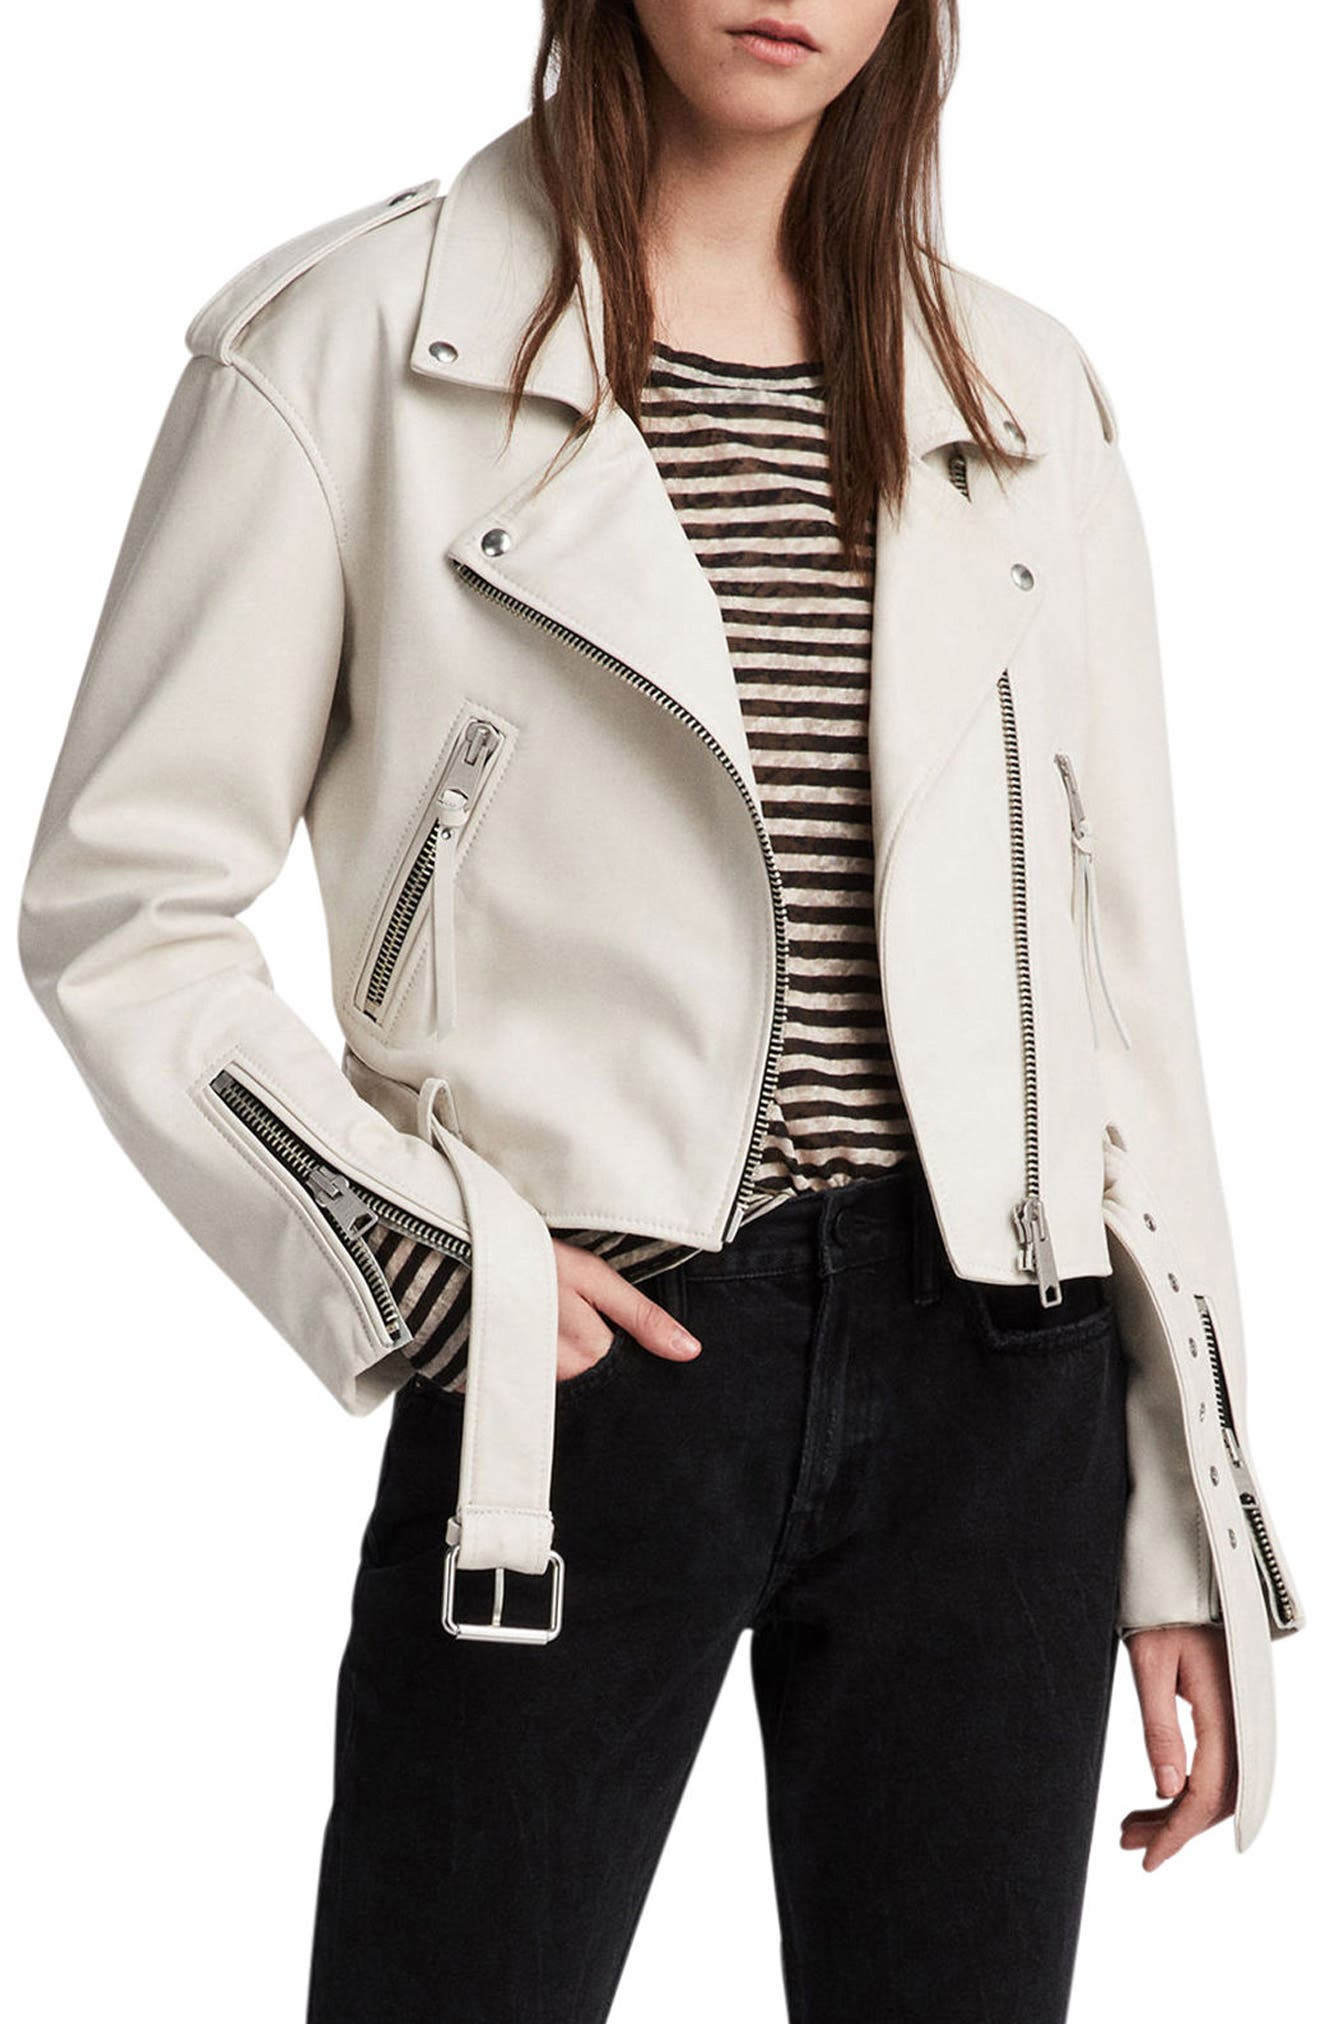 Anderson Sheepskin Leather Biker Jacket,                             Main thumbnail 1, color,                             100